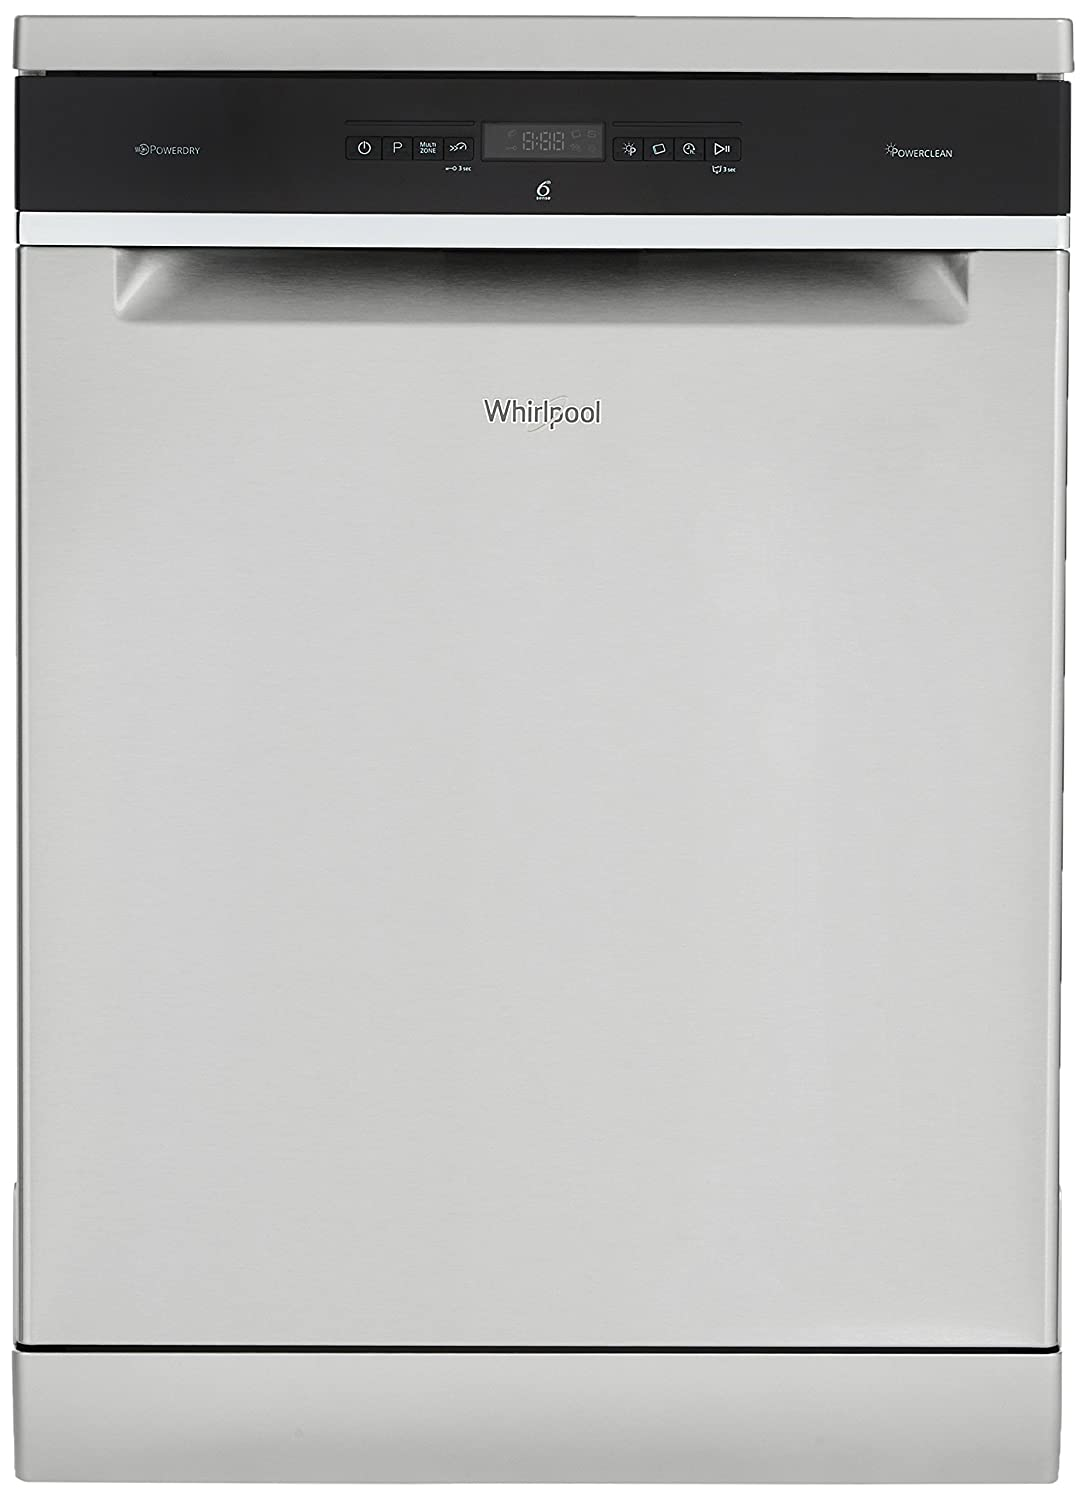 Whirlpool 14 Place Settings Dishwasher (PowerClean Pro-WFO3O33 DLX IN, Inox)